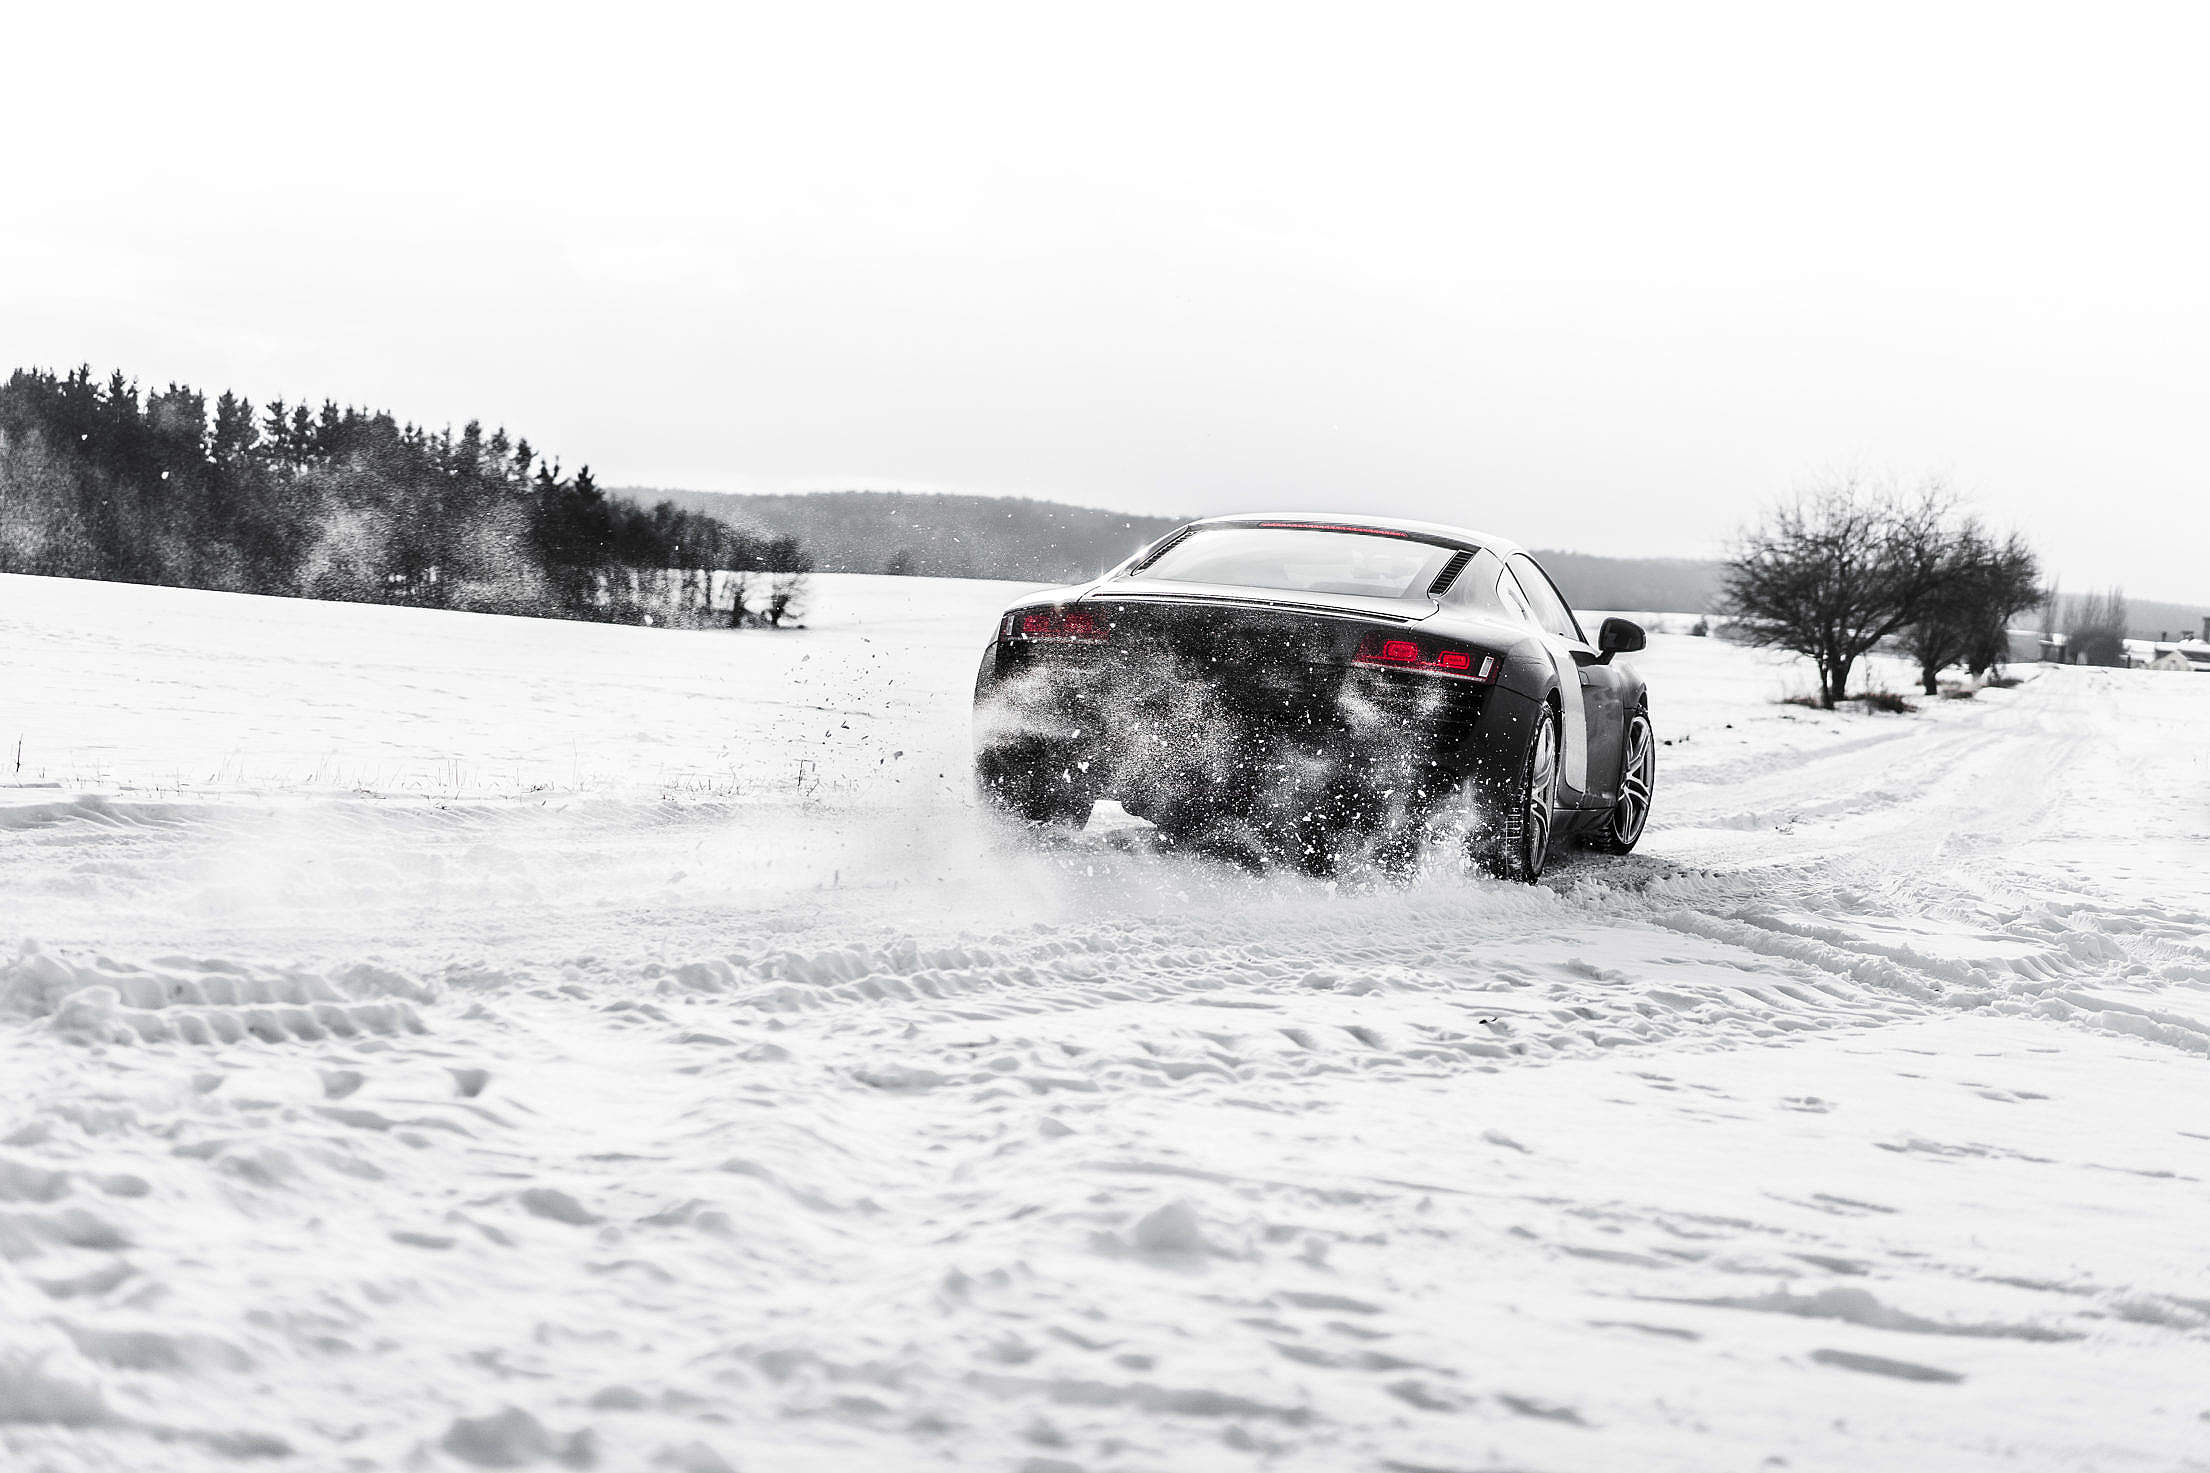 Supercar Drifting on a Snow Covered Road Free Stock Photo